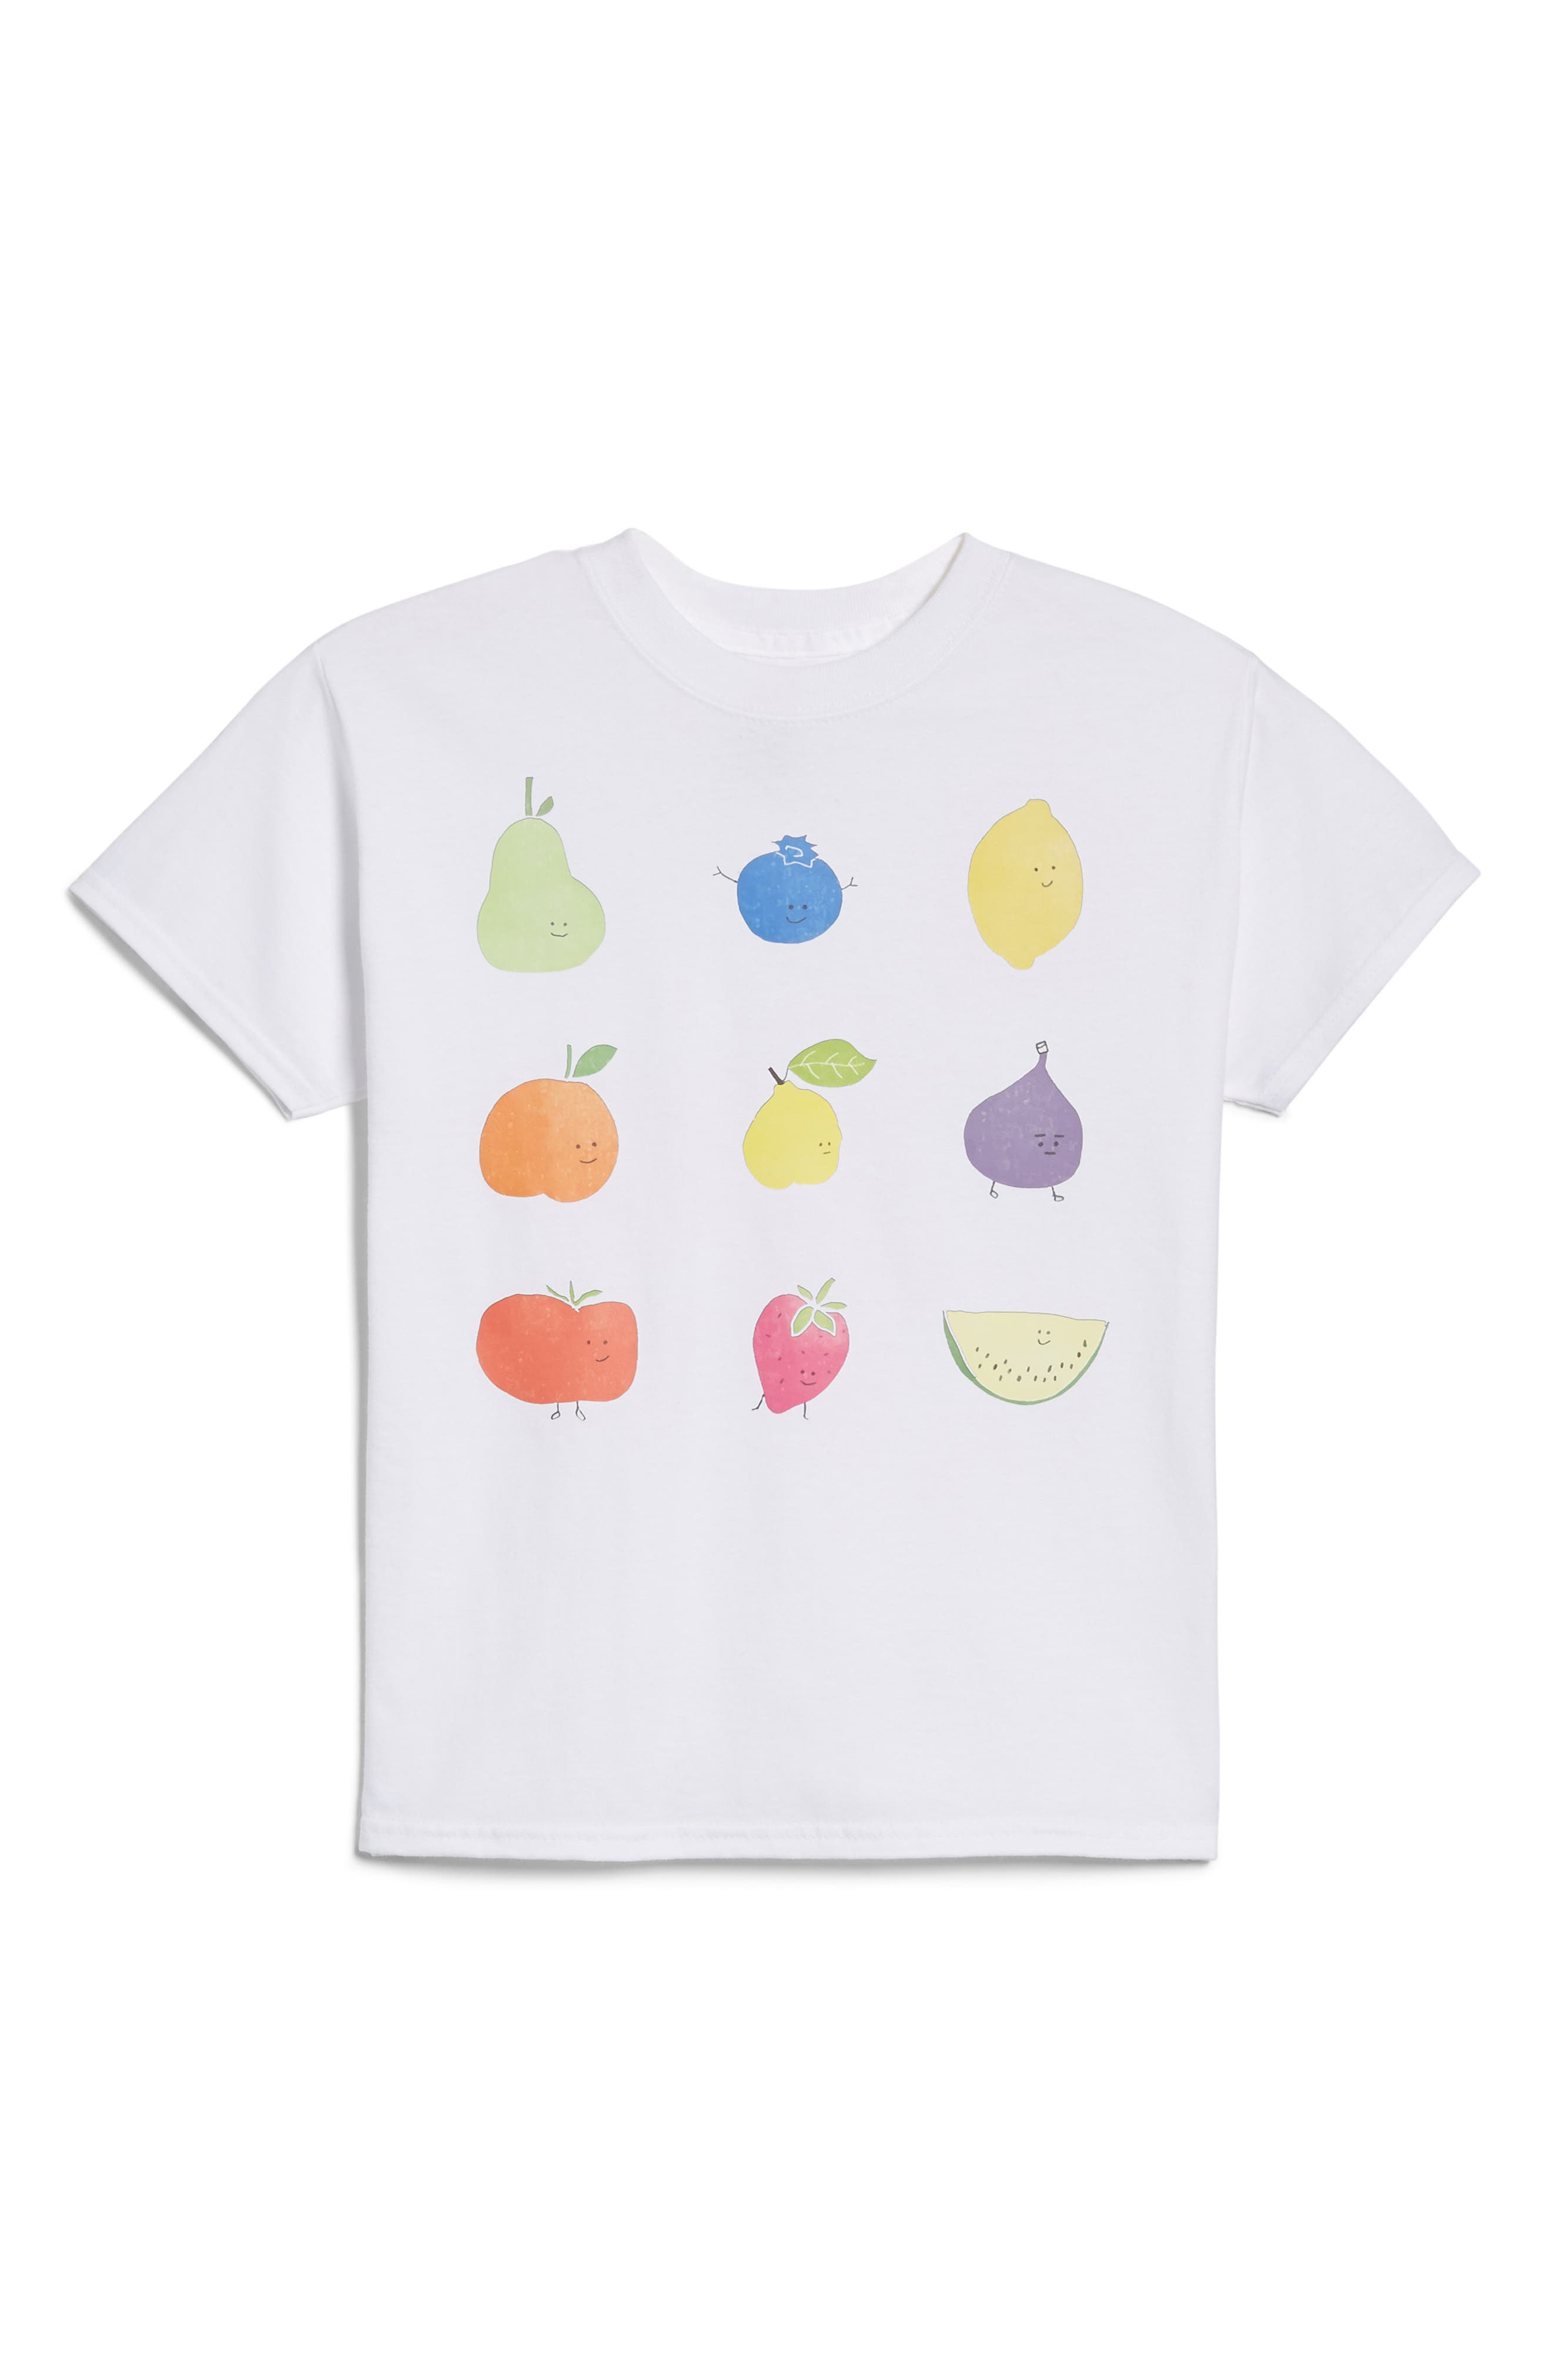 Alessandra Olanow Assorted Fruits T-Shirt (Toddler, Little Kid & Big Kid)